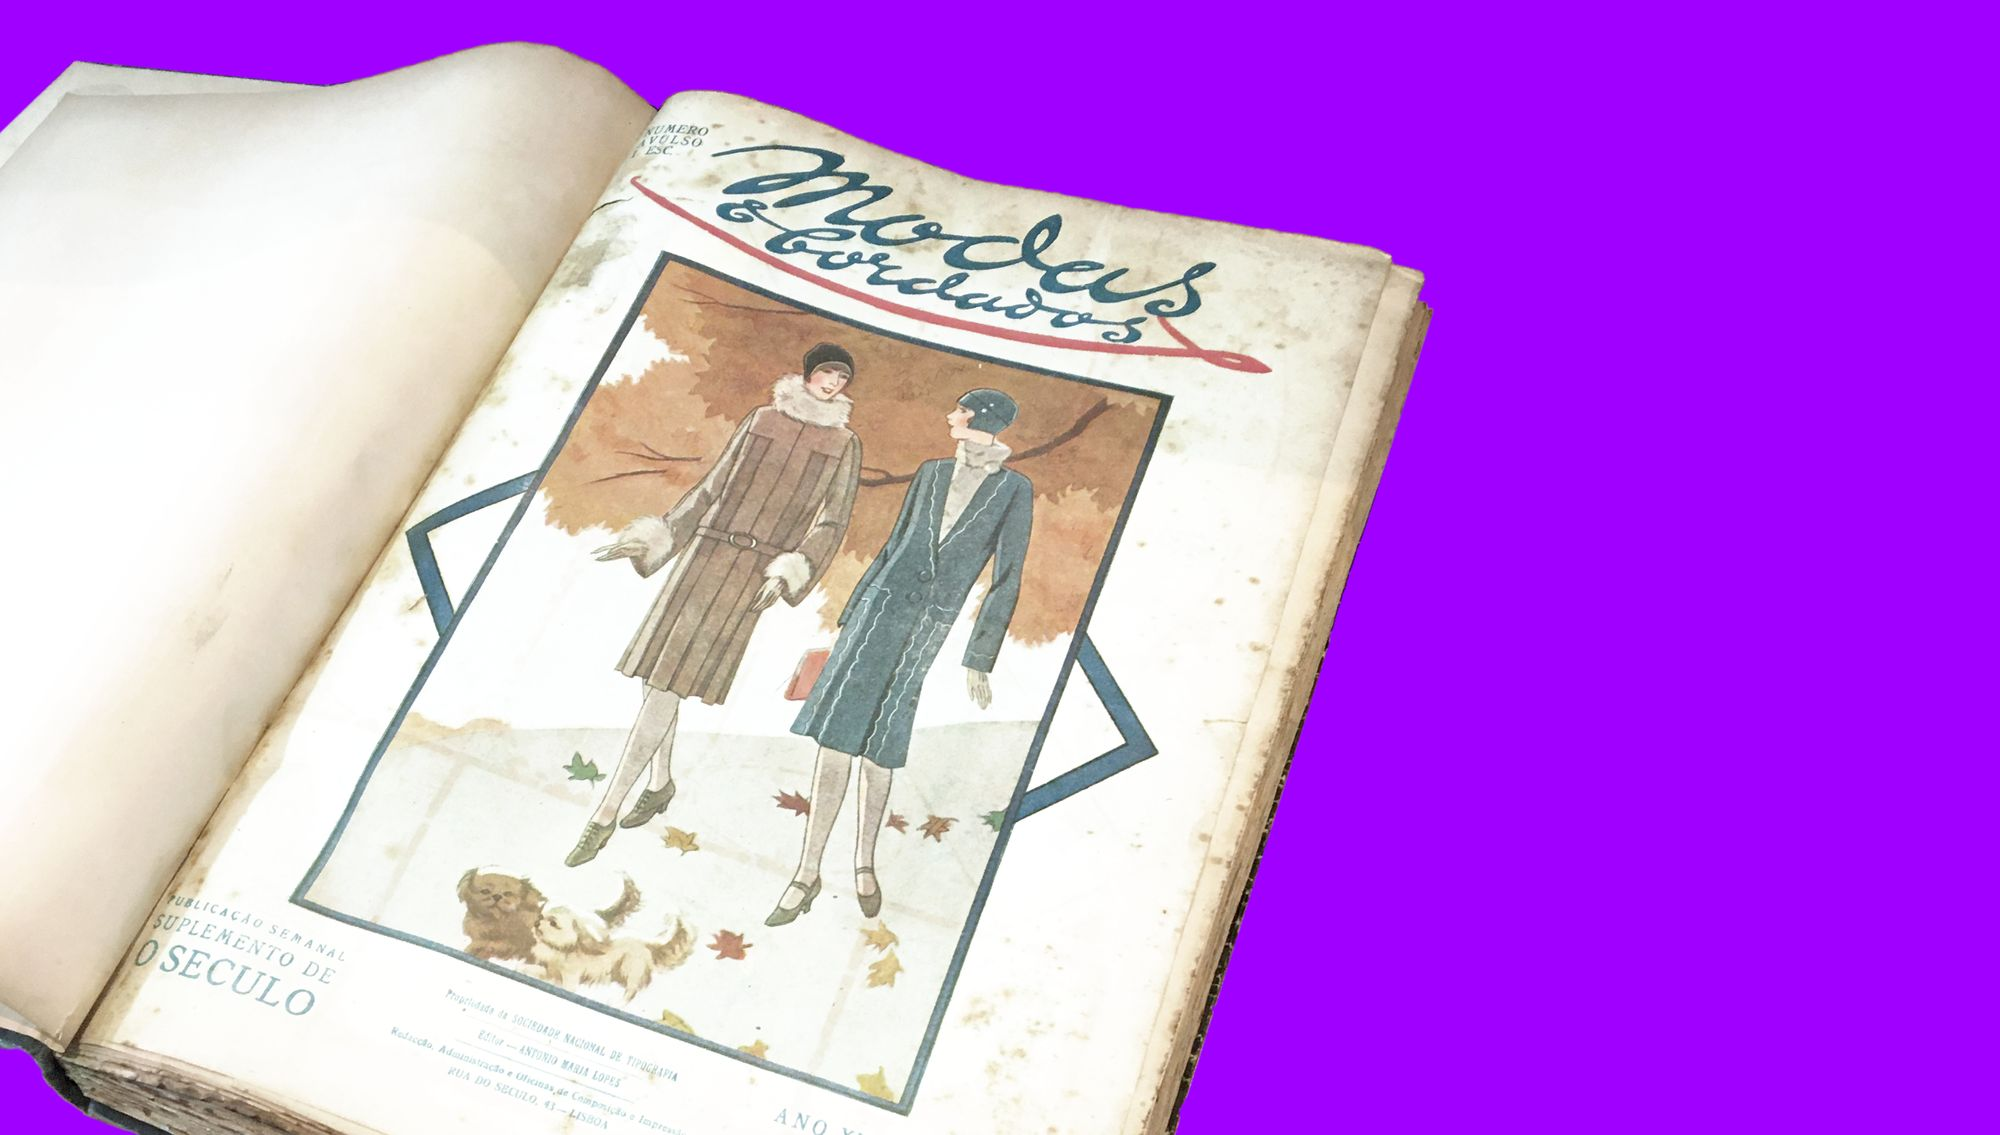 The cover of the first issue of 1928 shows two white, thin, tall women, sporting modern winter coats, smiling and chatting, while walking down an autumnal path led by tiny identical dogs.